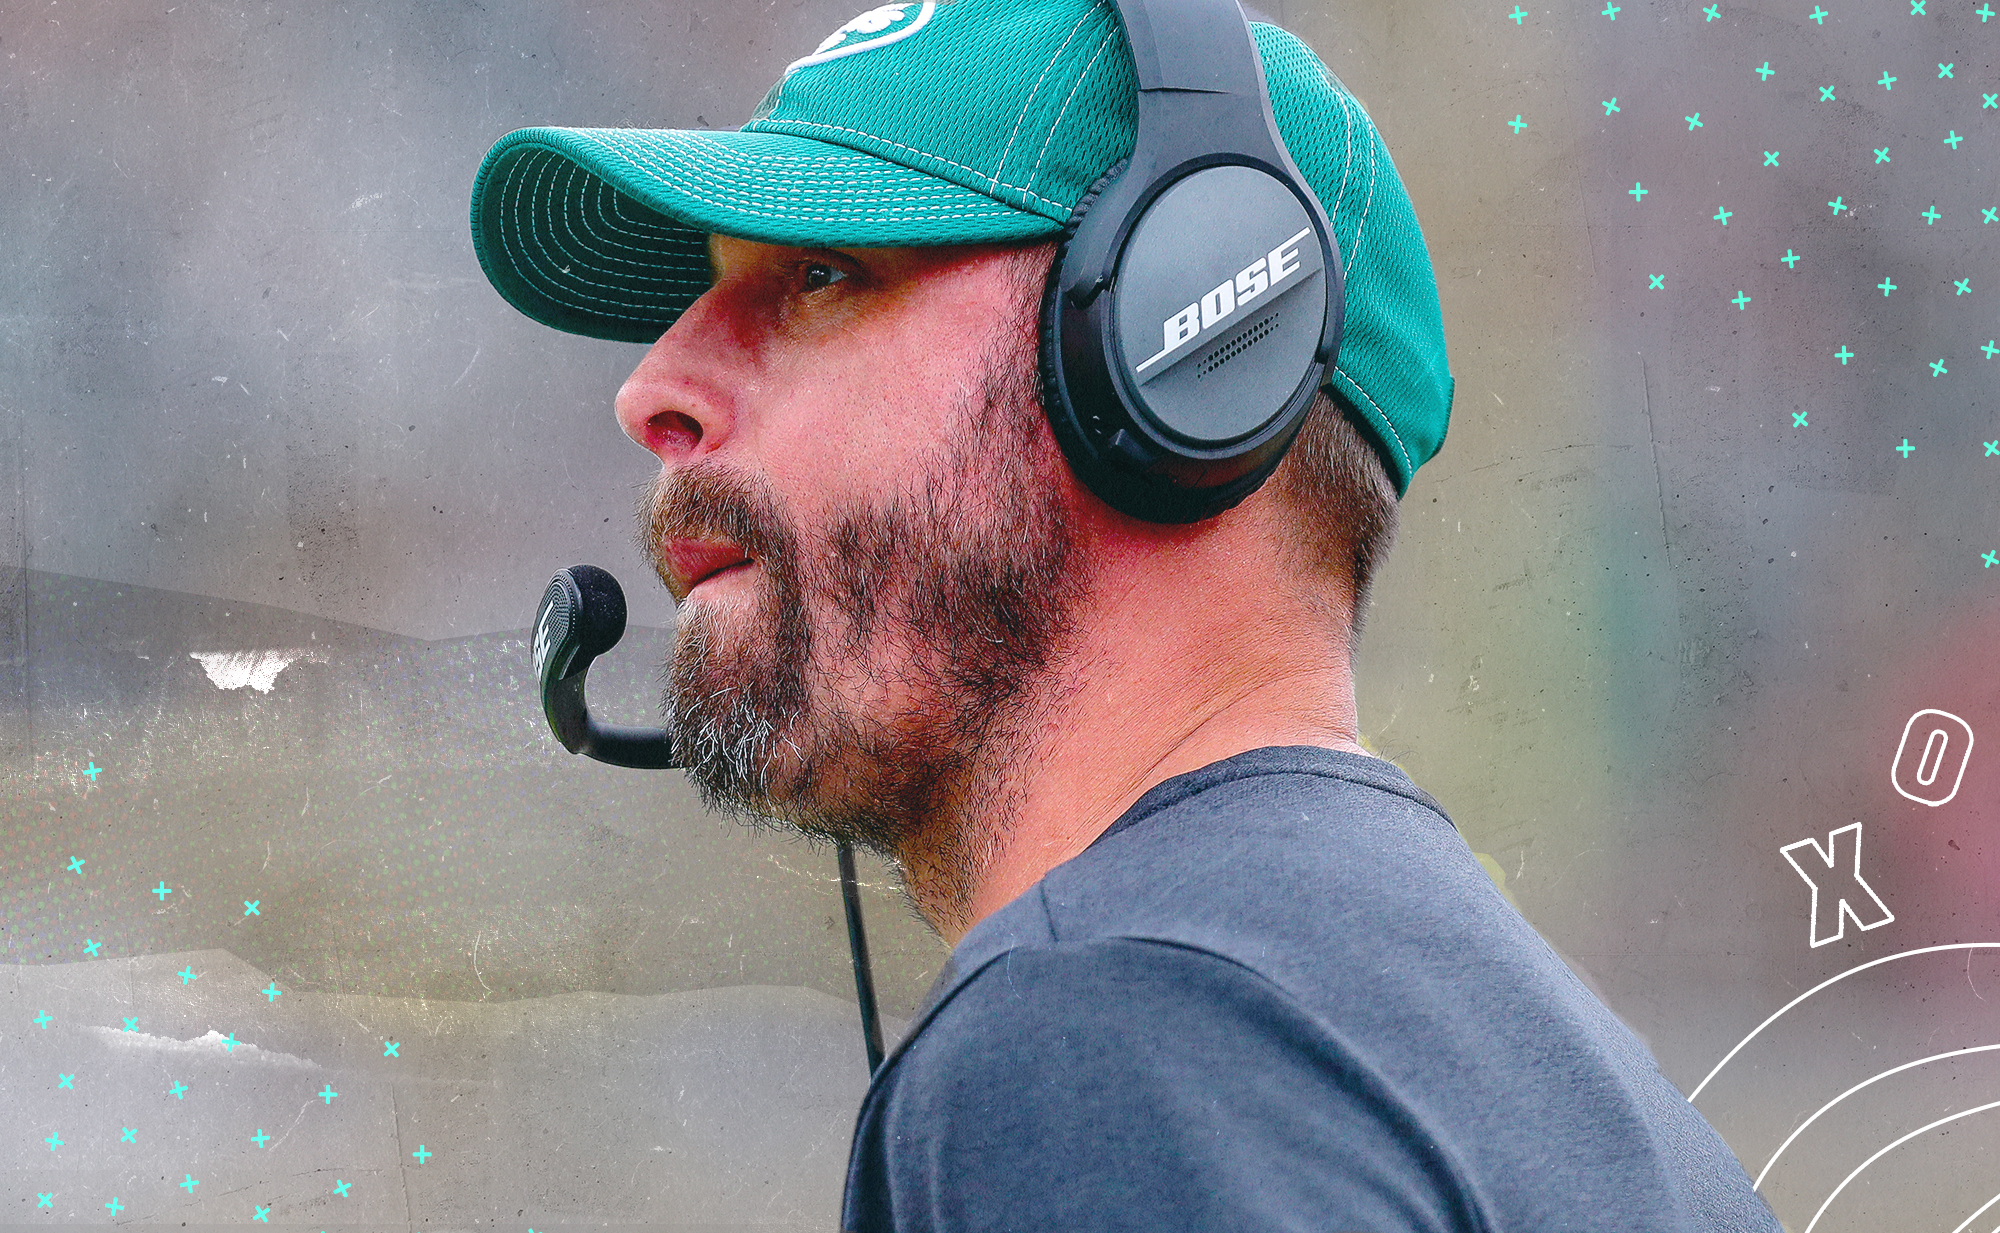 Jets head coach Adam Gase, wearing his headset, in front of a background with white Xs and Os